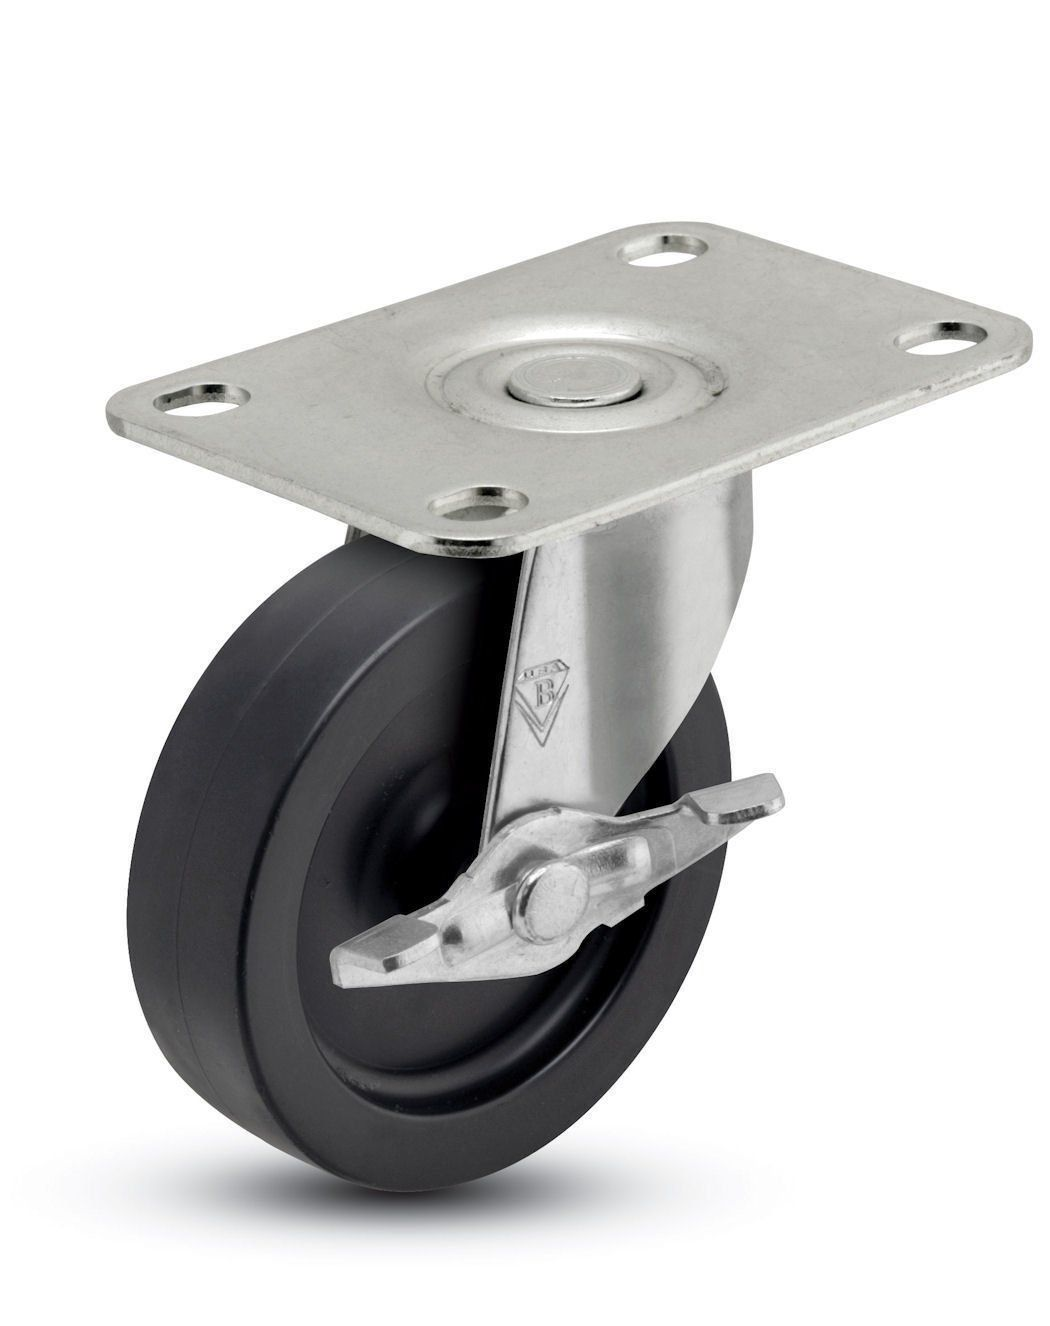 Shepherd Regent Series 2 1 2 Diameter Polyolefin Wheel Swivel Caster With Side Brake 2 Length X 1 3 16 Width Plate 95 Lbs Cap Swivel Casters Caster Swivel